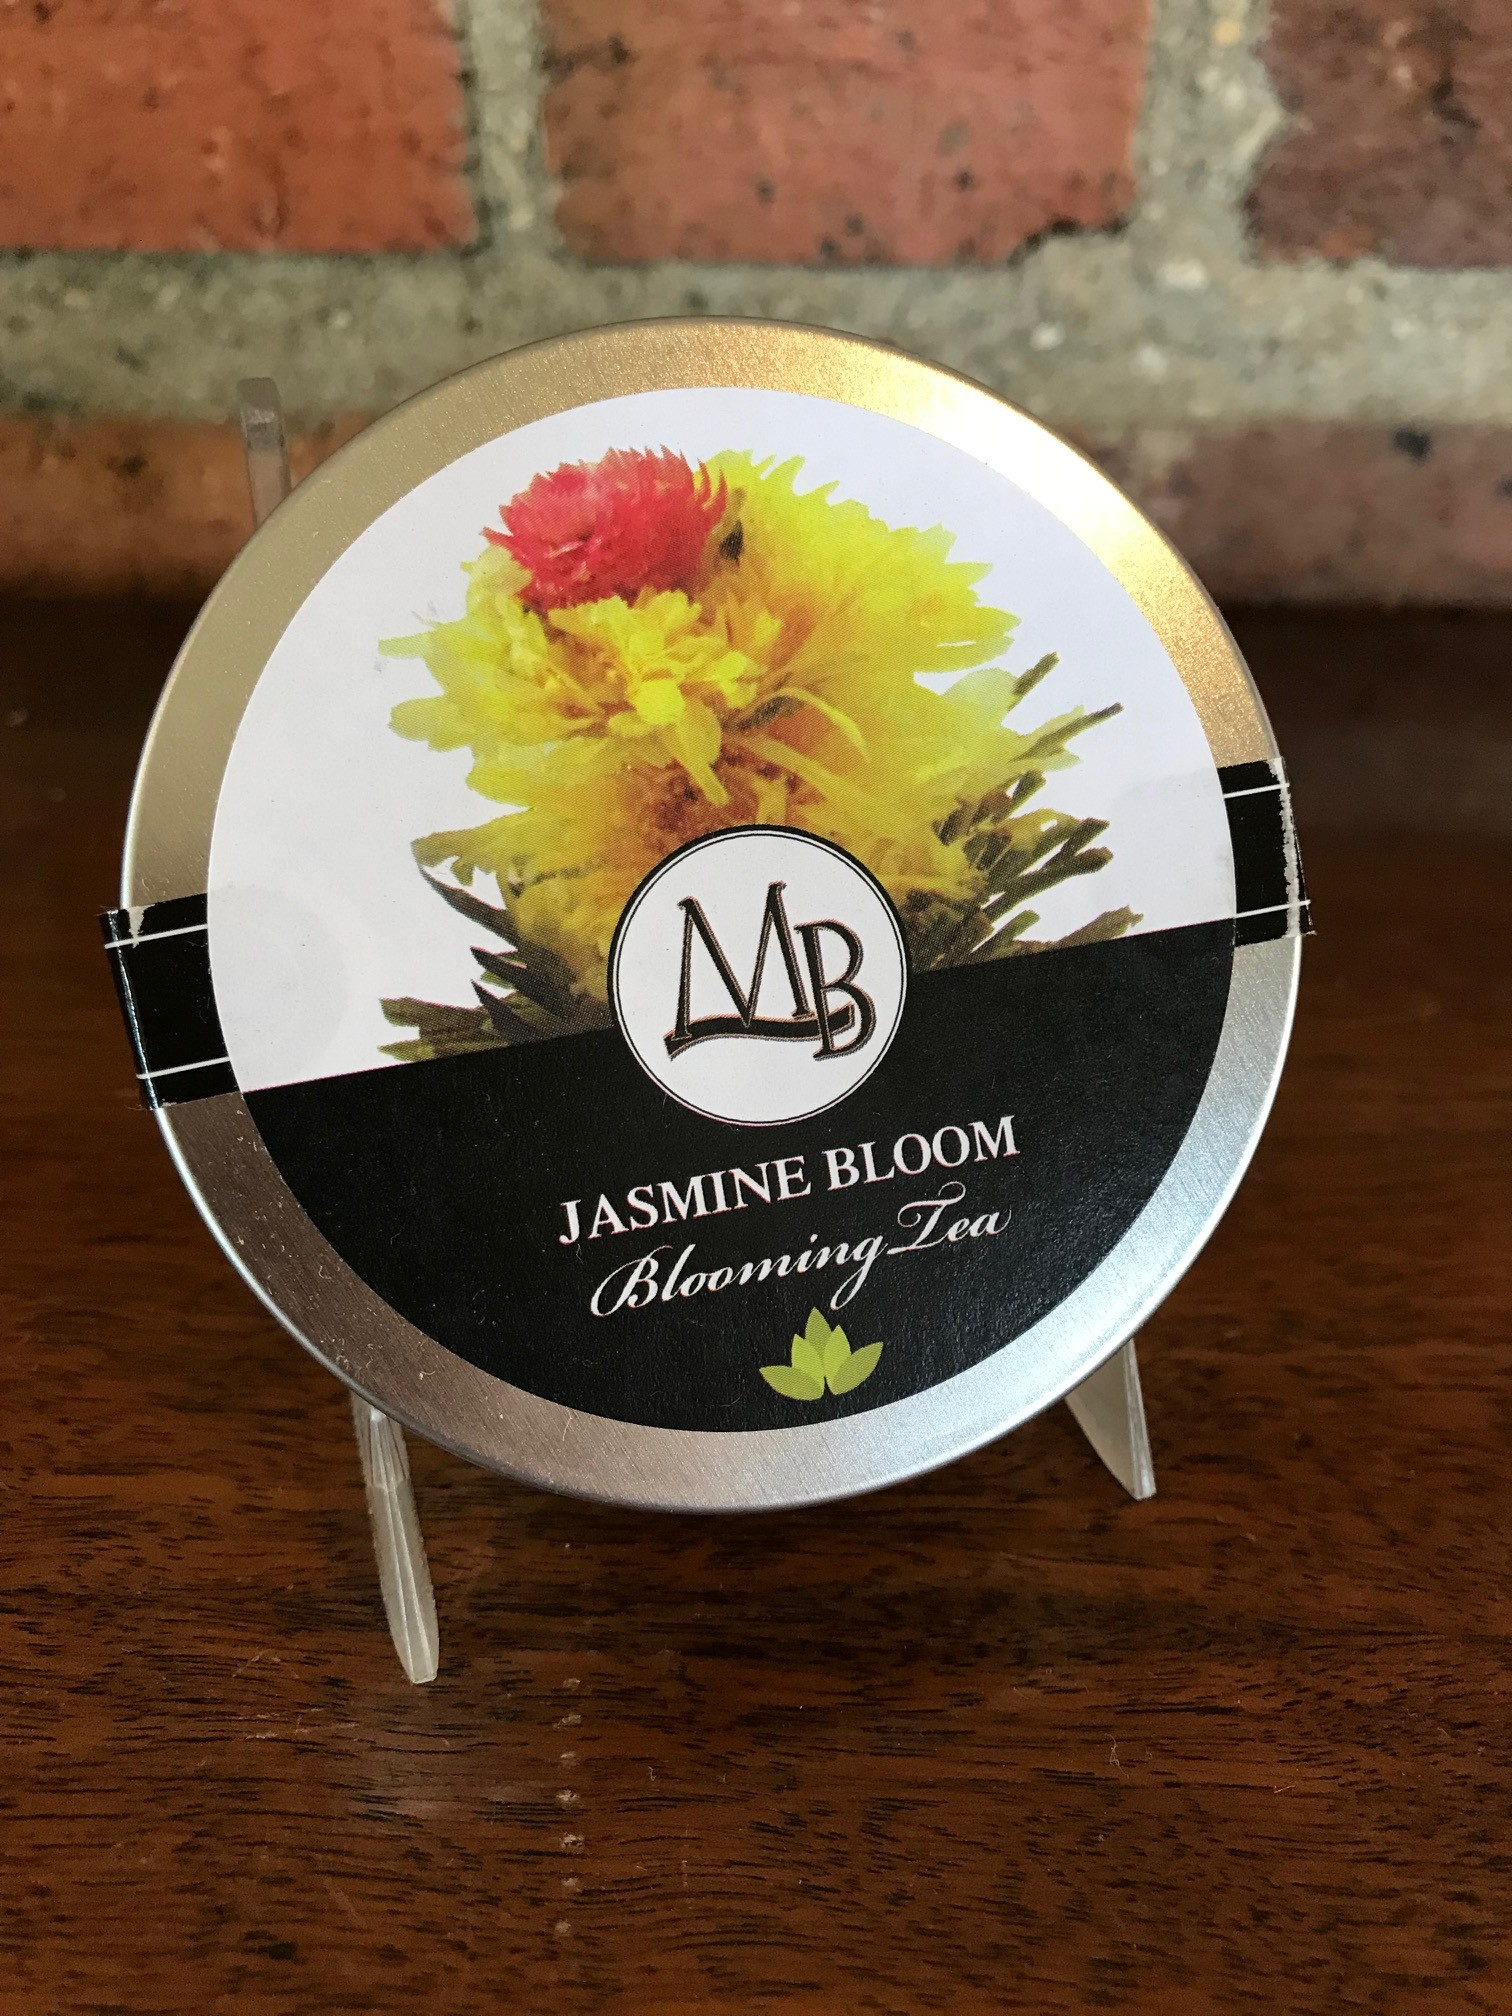 Blooming Tea: Jasmine Bloom